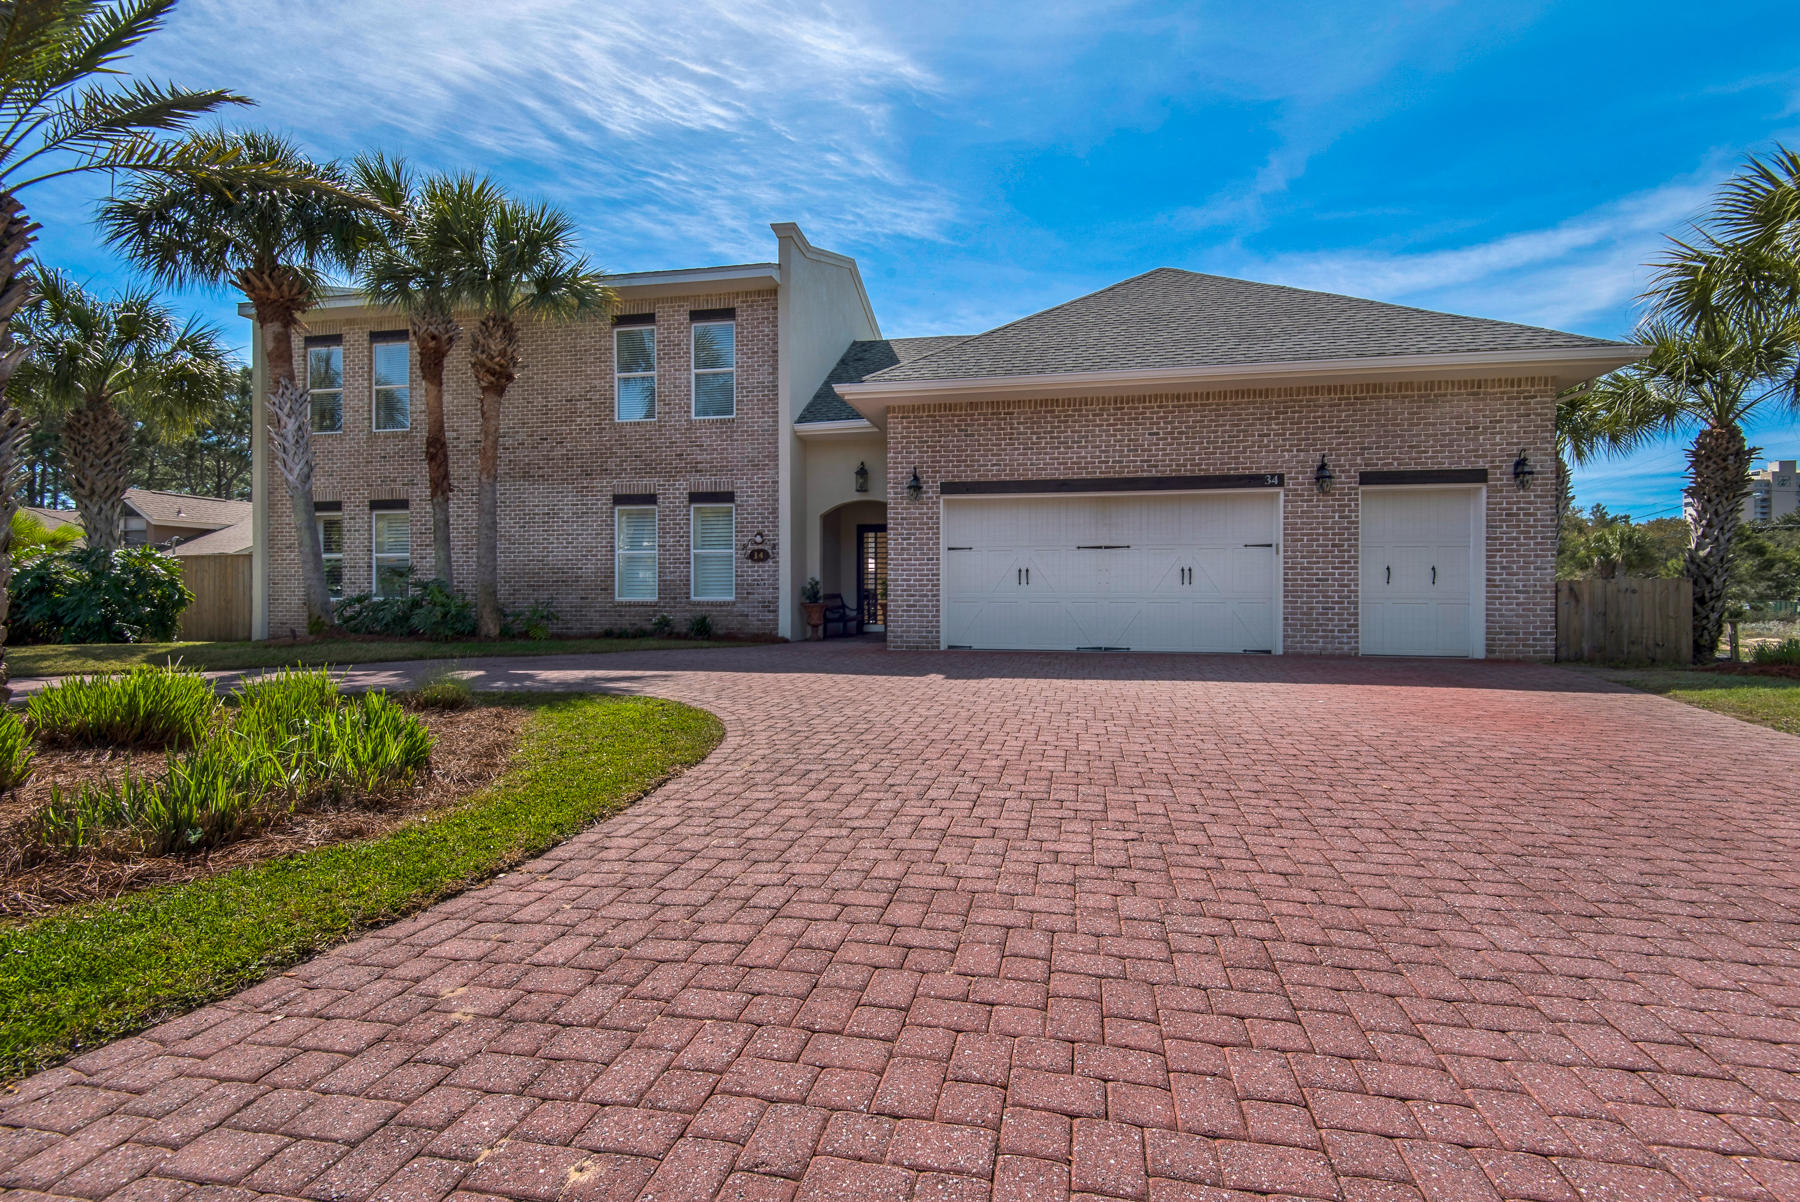 34 Lakeview Beach Drive, Miramar Beach, FL 32550